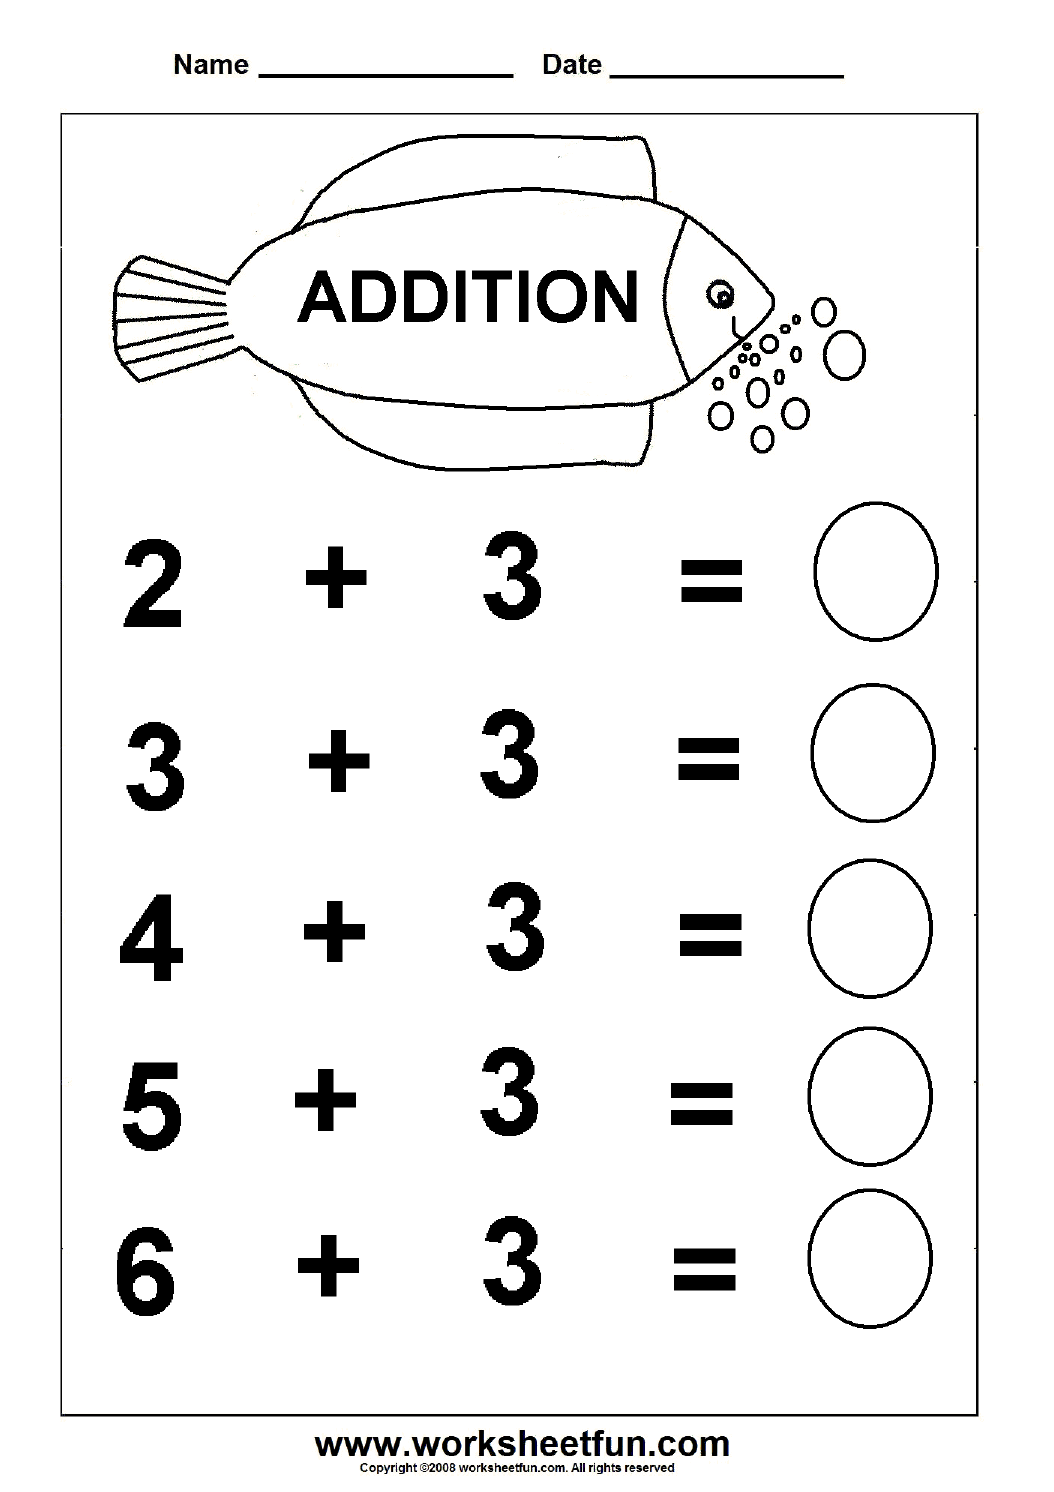 Printables Simple Addition Math Worksheets addition basic facts free printable worksheets beginner 6 kindergarten worksheets